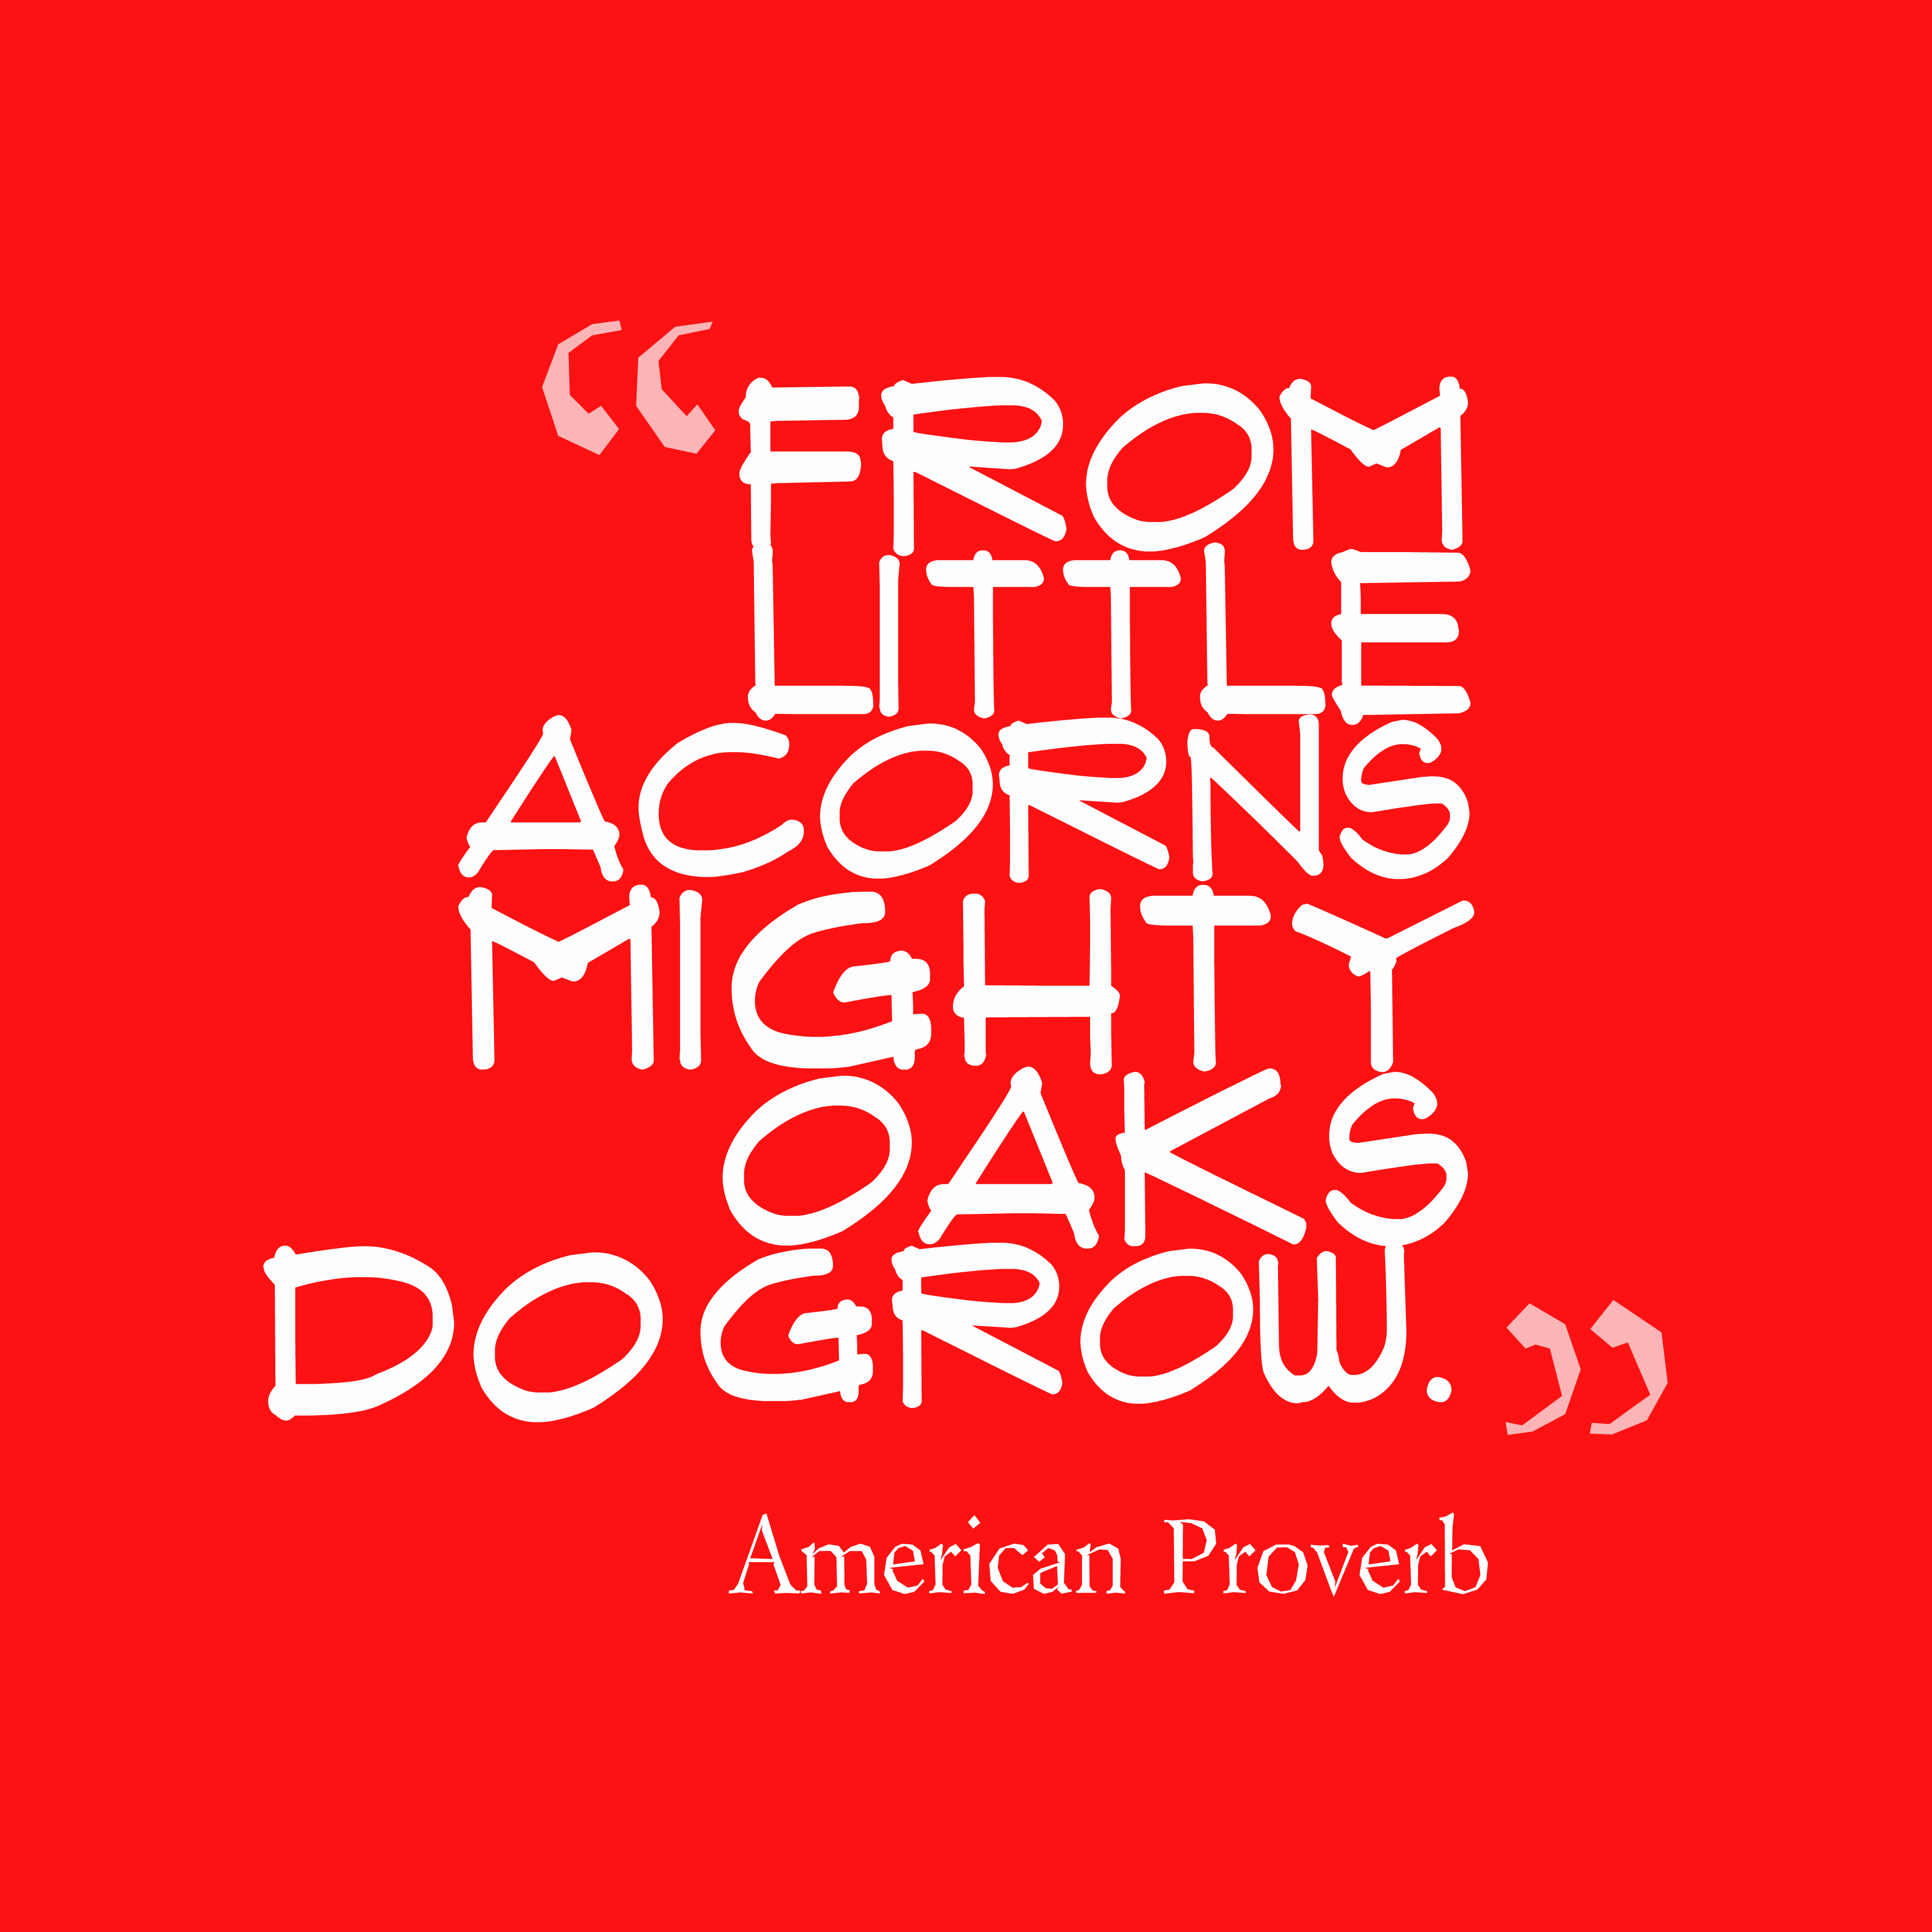 Picture American proverb about grow. : QuotesCover.com